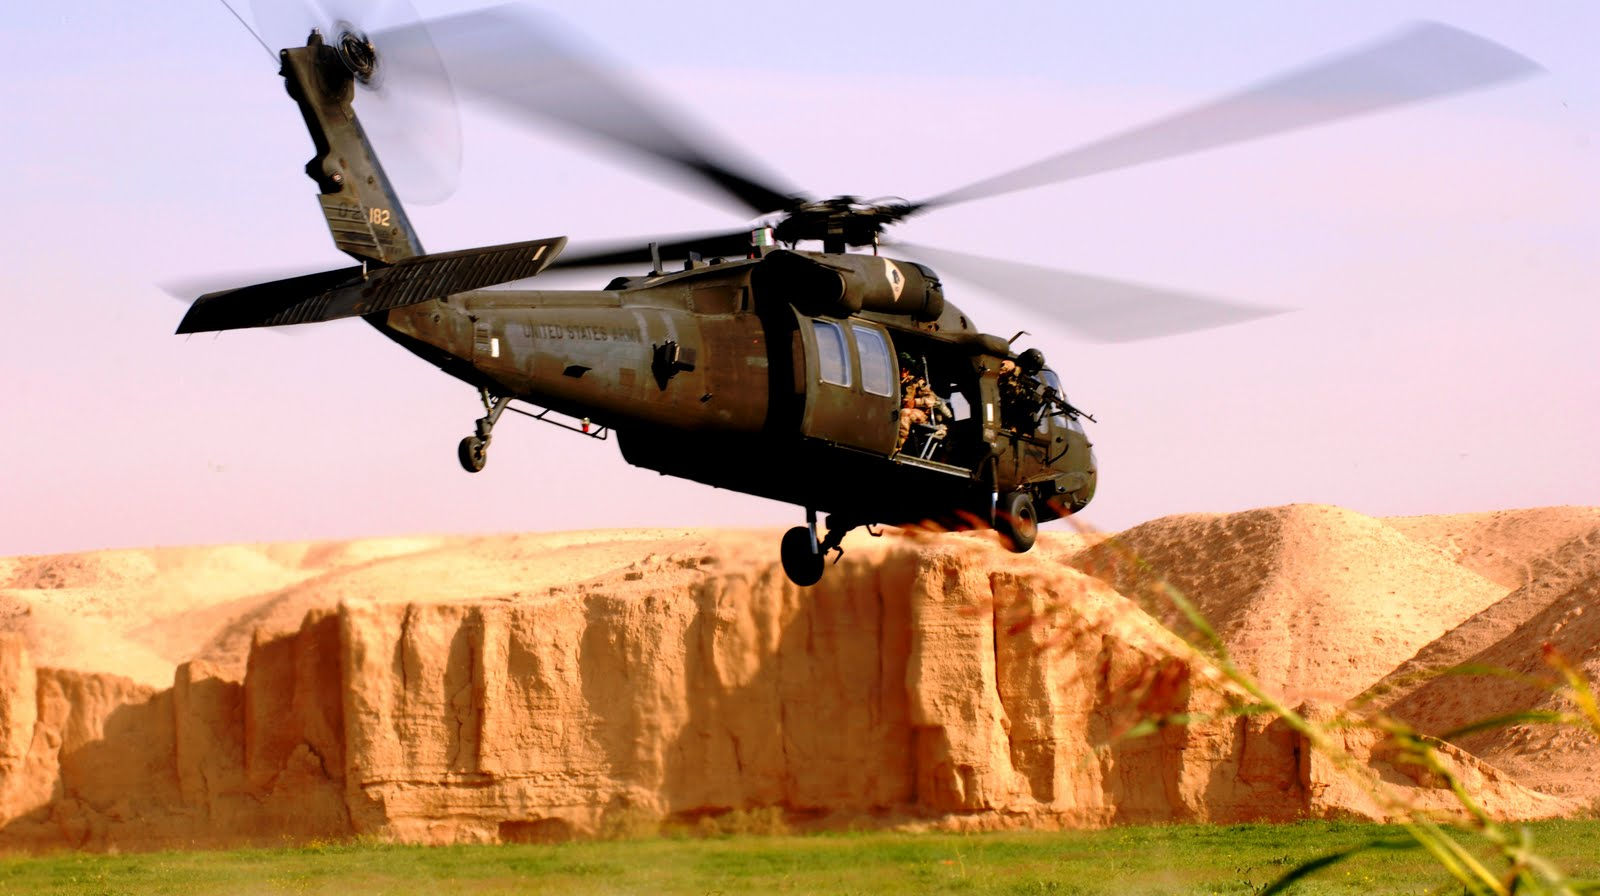 helicopter UH 60 Black Hawk 8127641 aircraft wallpaperjpg 1600x896